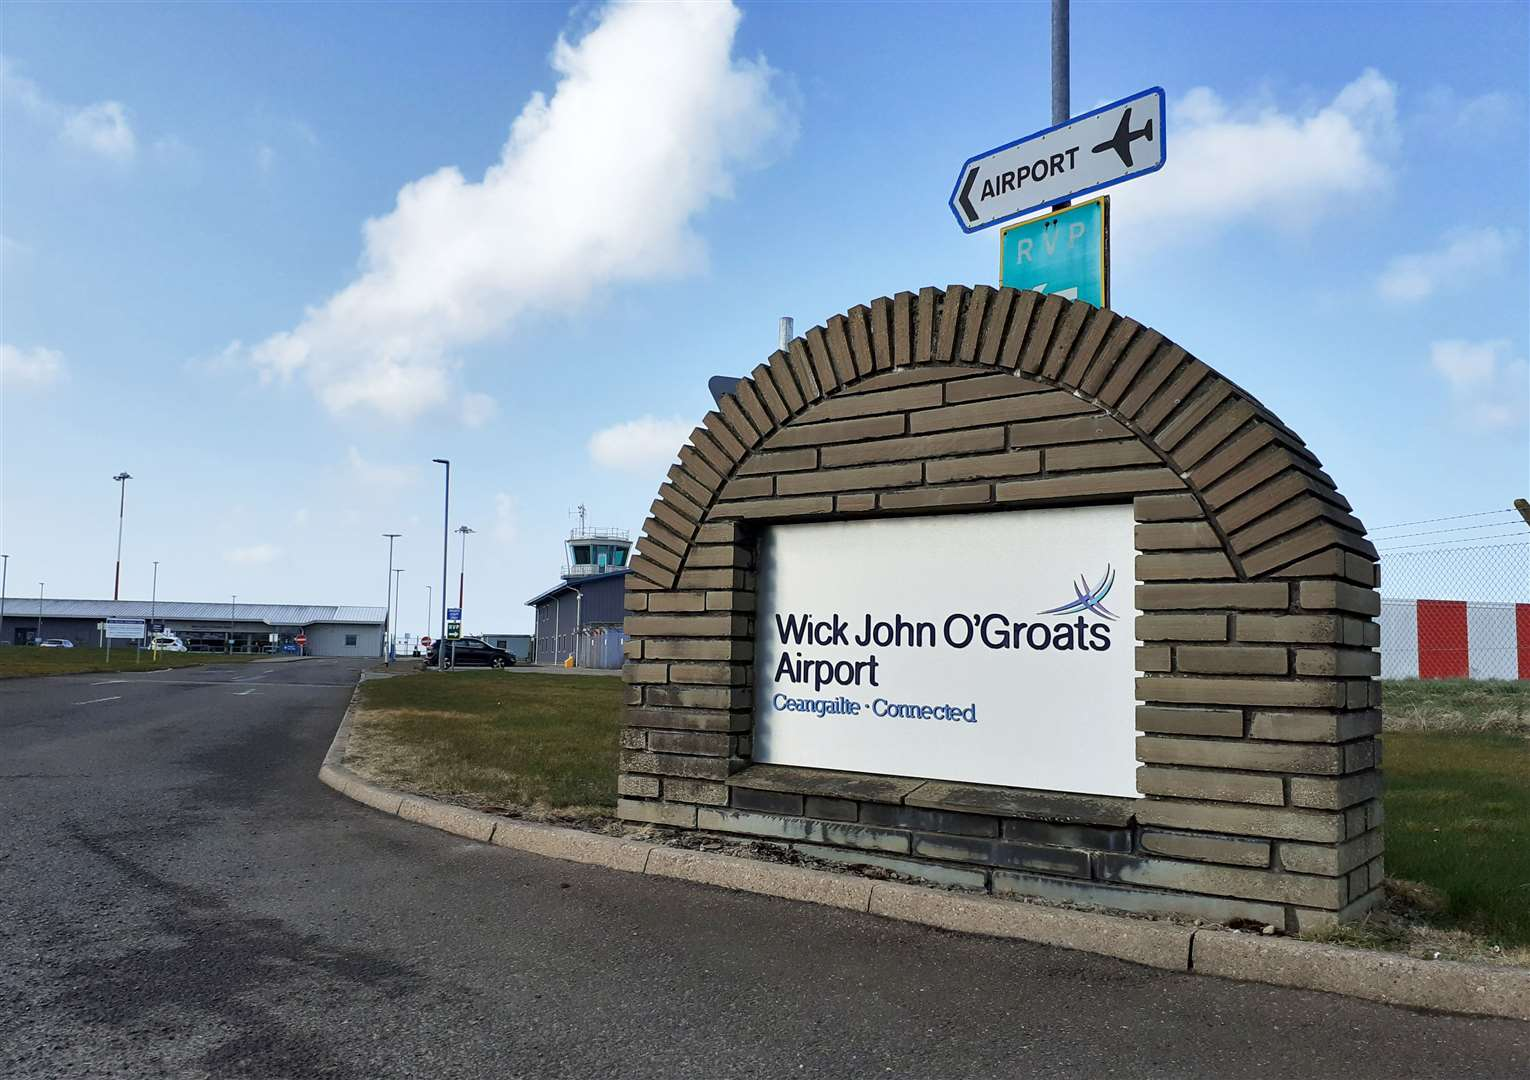 Under the Hial plans, Wick John O'Groats Airport will see a downgrading of its air traffic service.